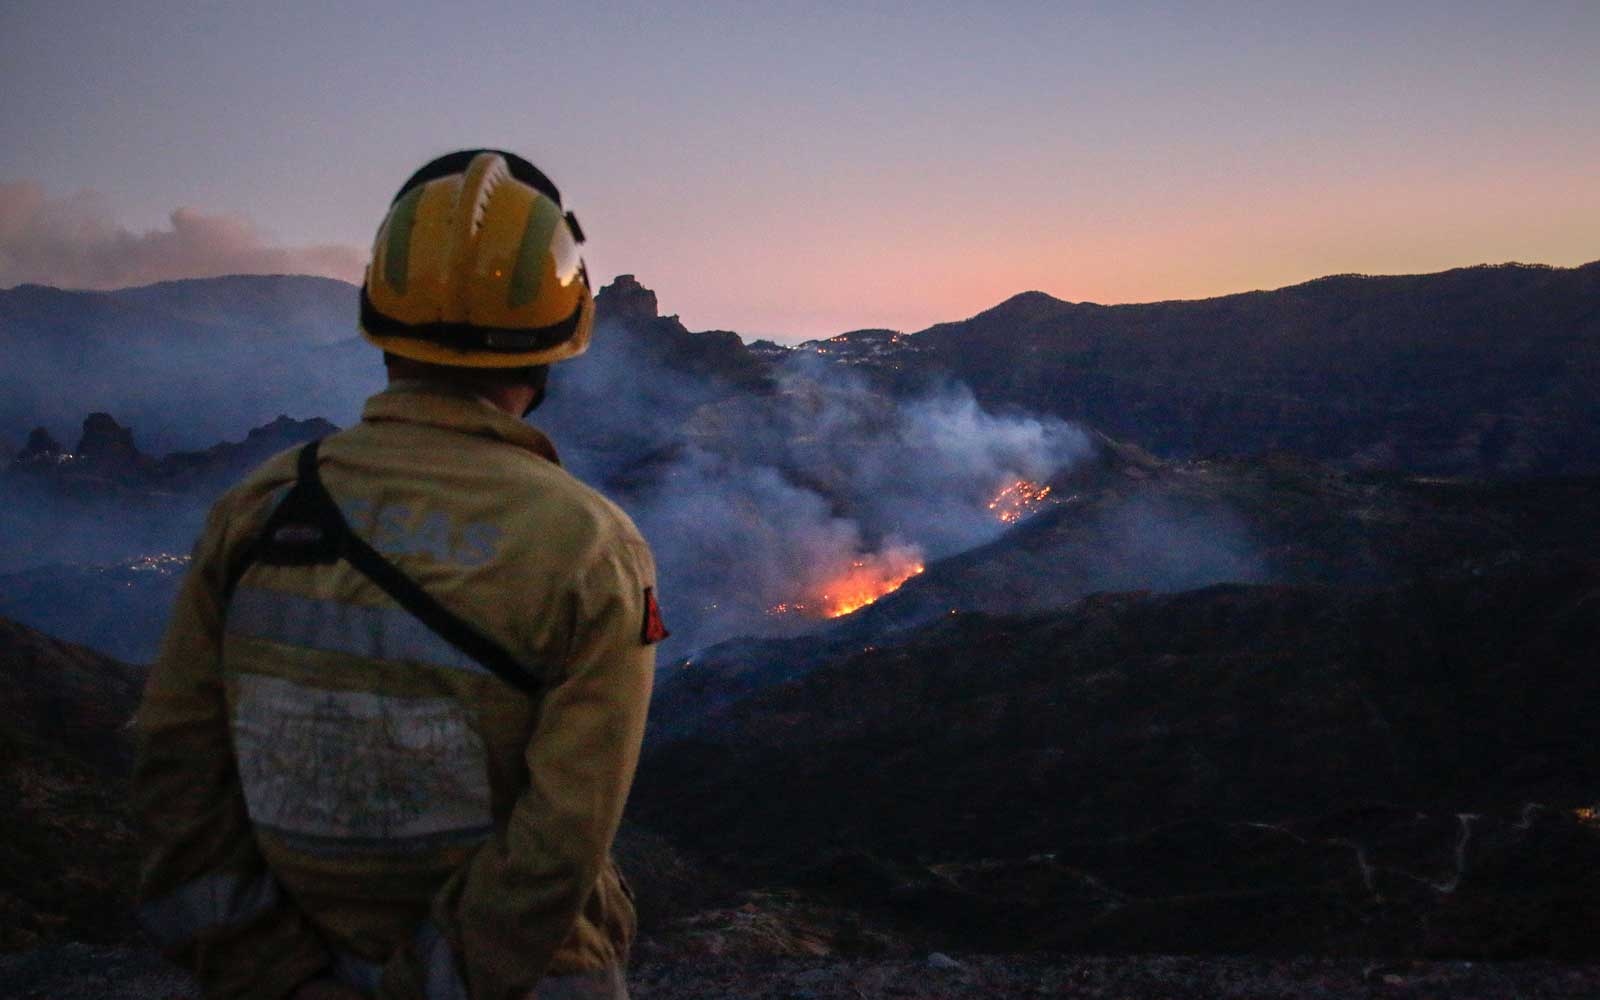 A firefighter observes flames rising from a forest fire near the village of Ayacata in Tejeda on the island of Gran Canaria on August 20, 2019.